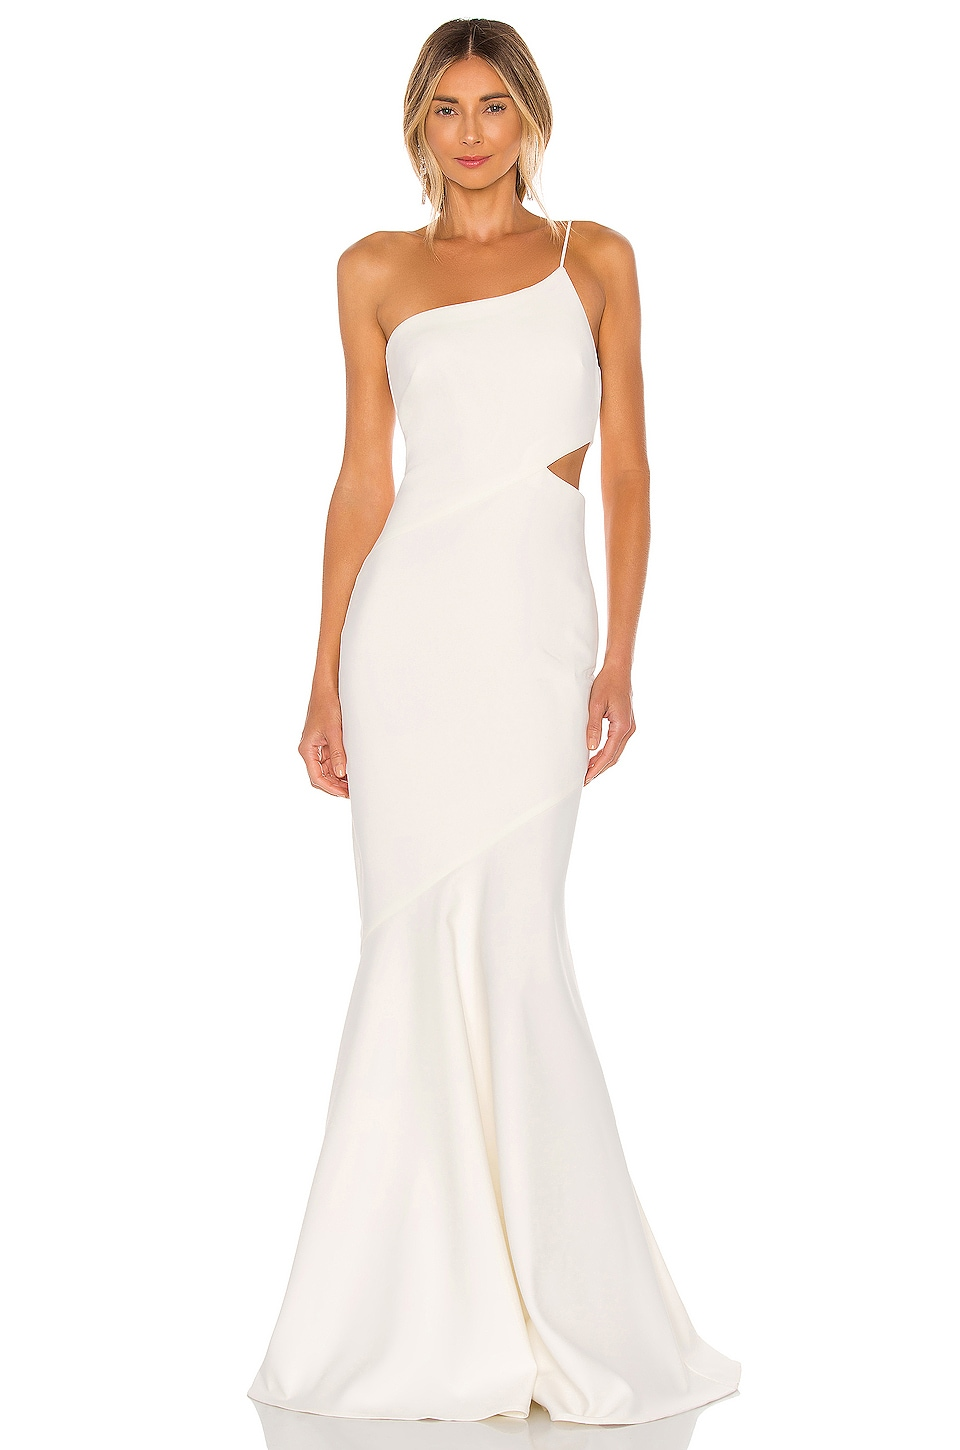 LIKELY Fina Gown in White